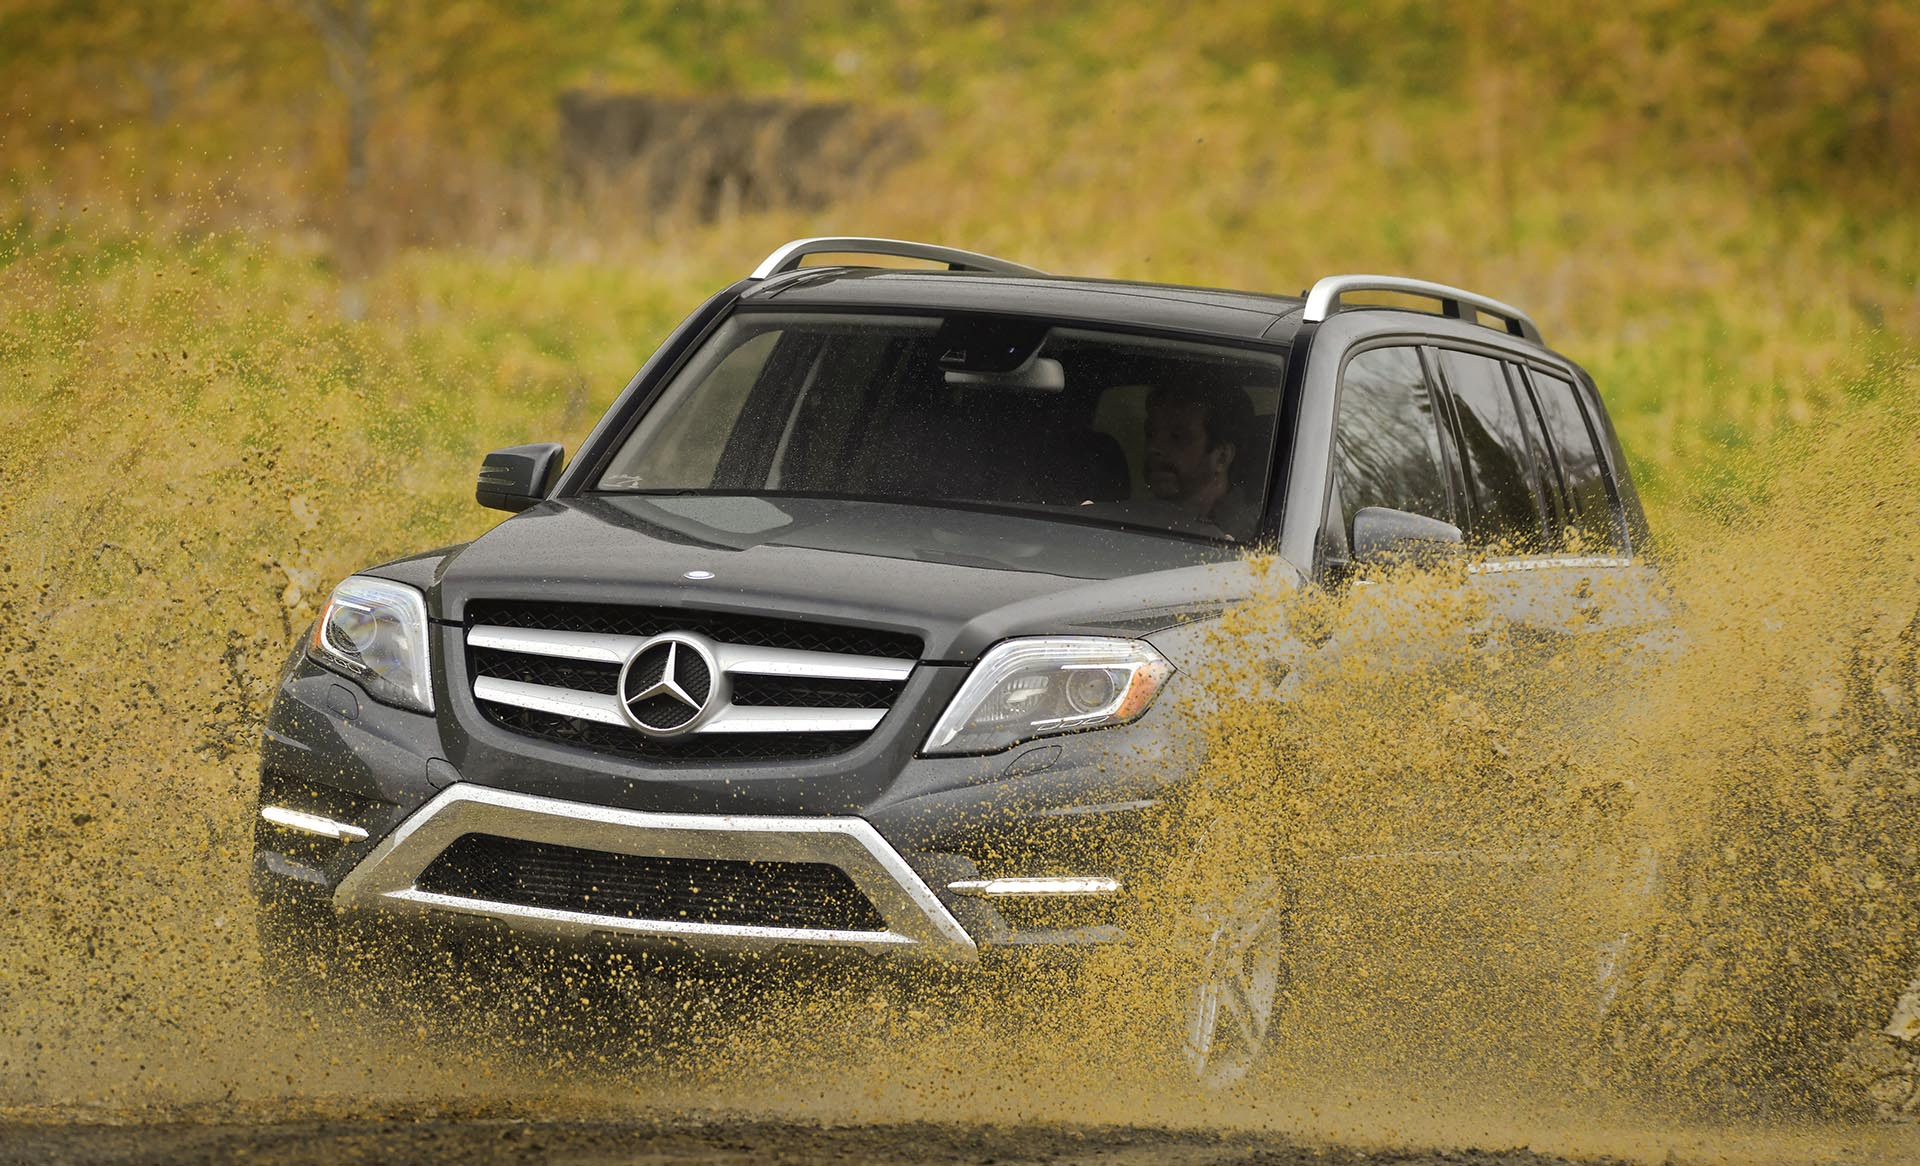 07_Mercedes-BenzGLK250 Bluetec water splash